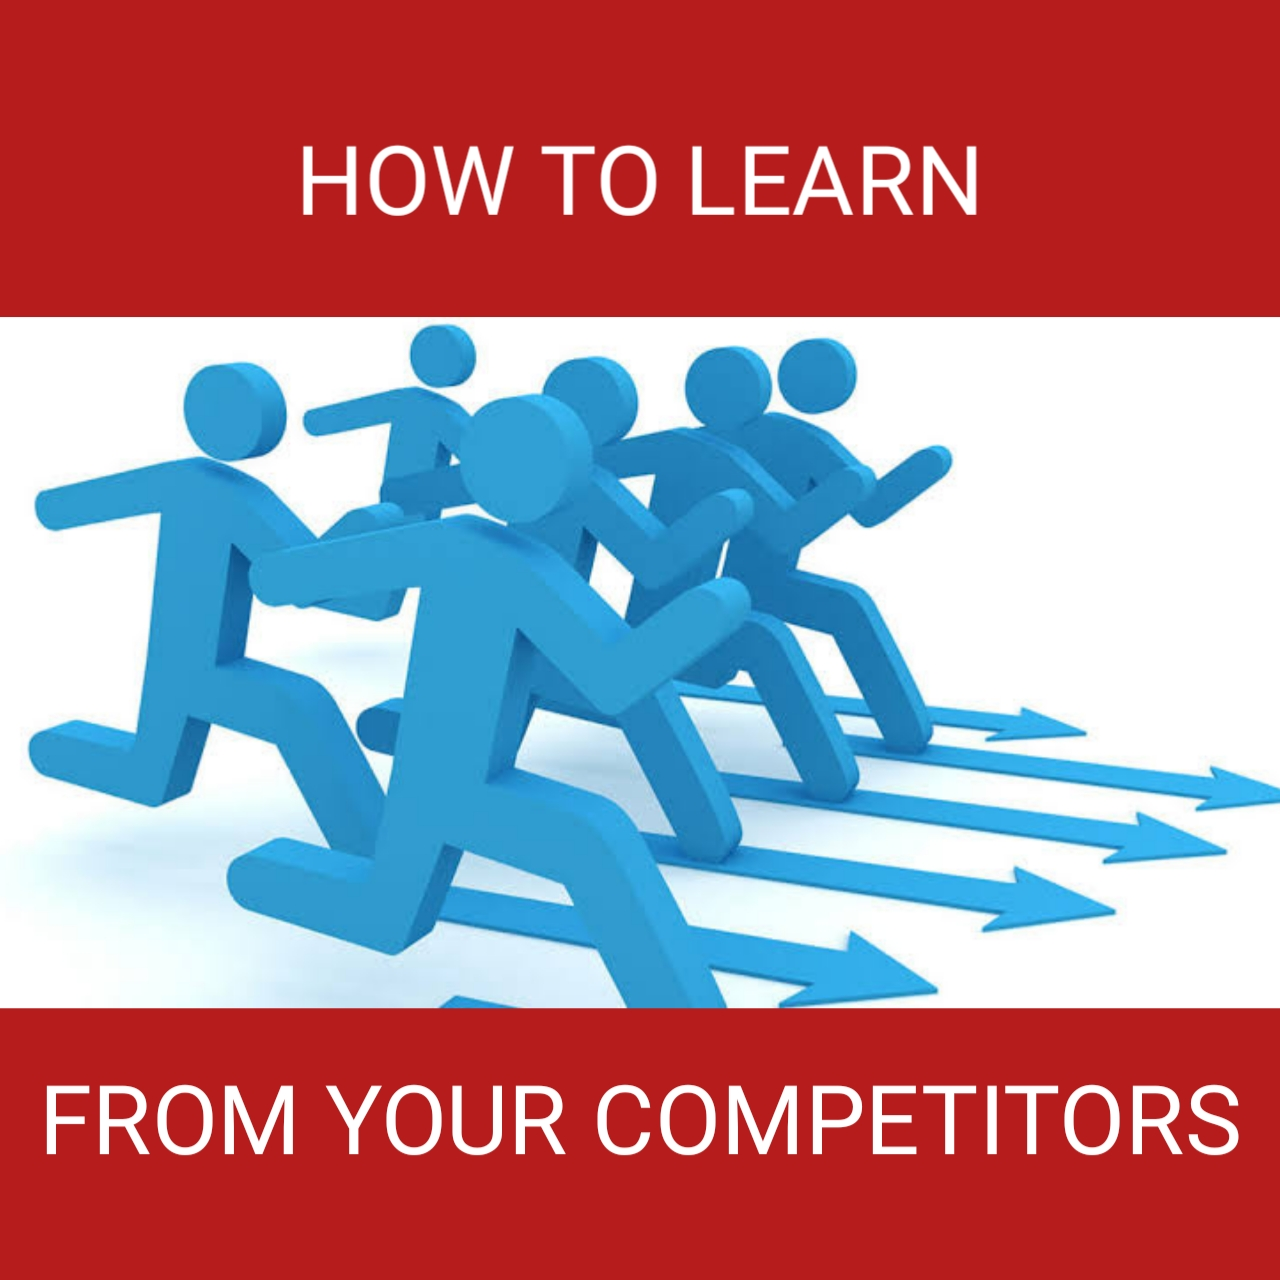 How To Learn From Your Competitors